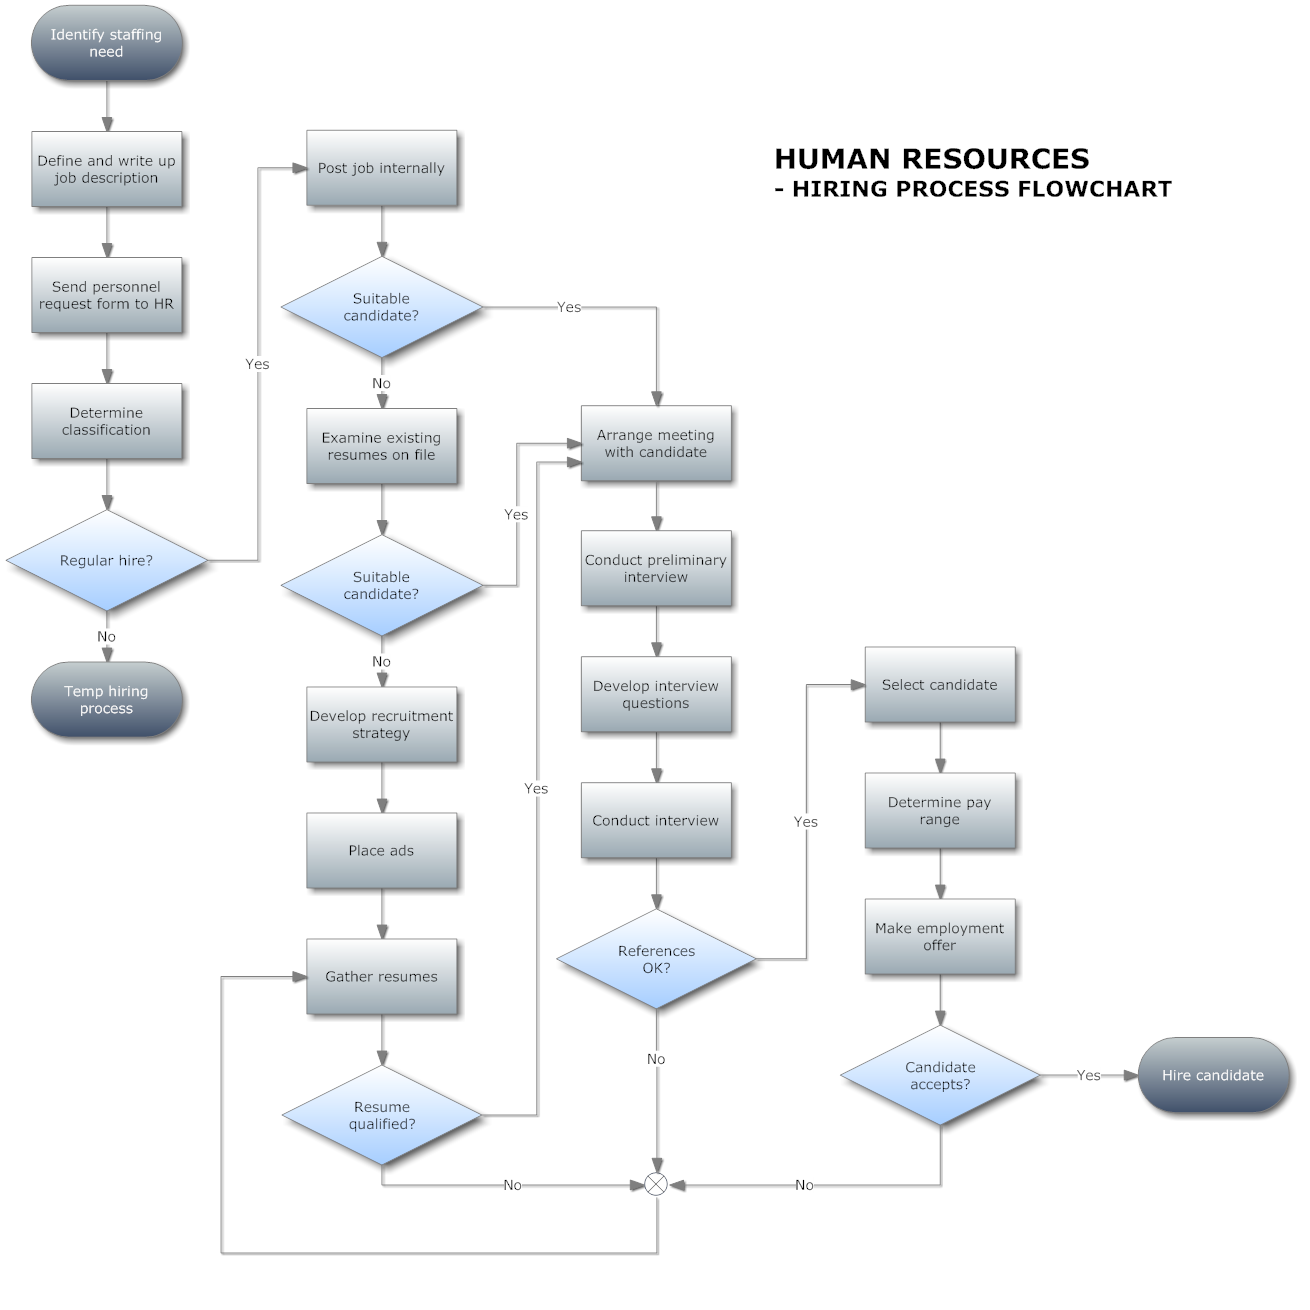 Human Resources Hiring Flow Chart |  flowchart-example-human-resources-hiring-process-flowchart